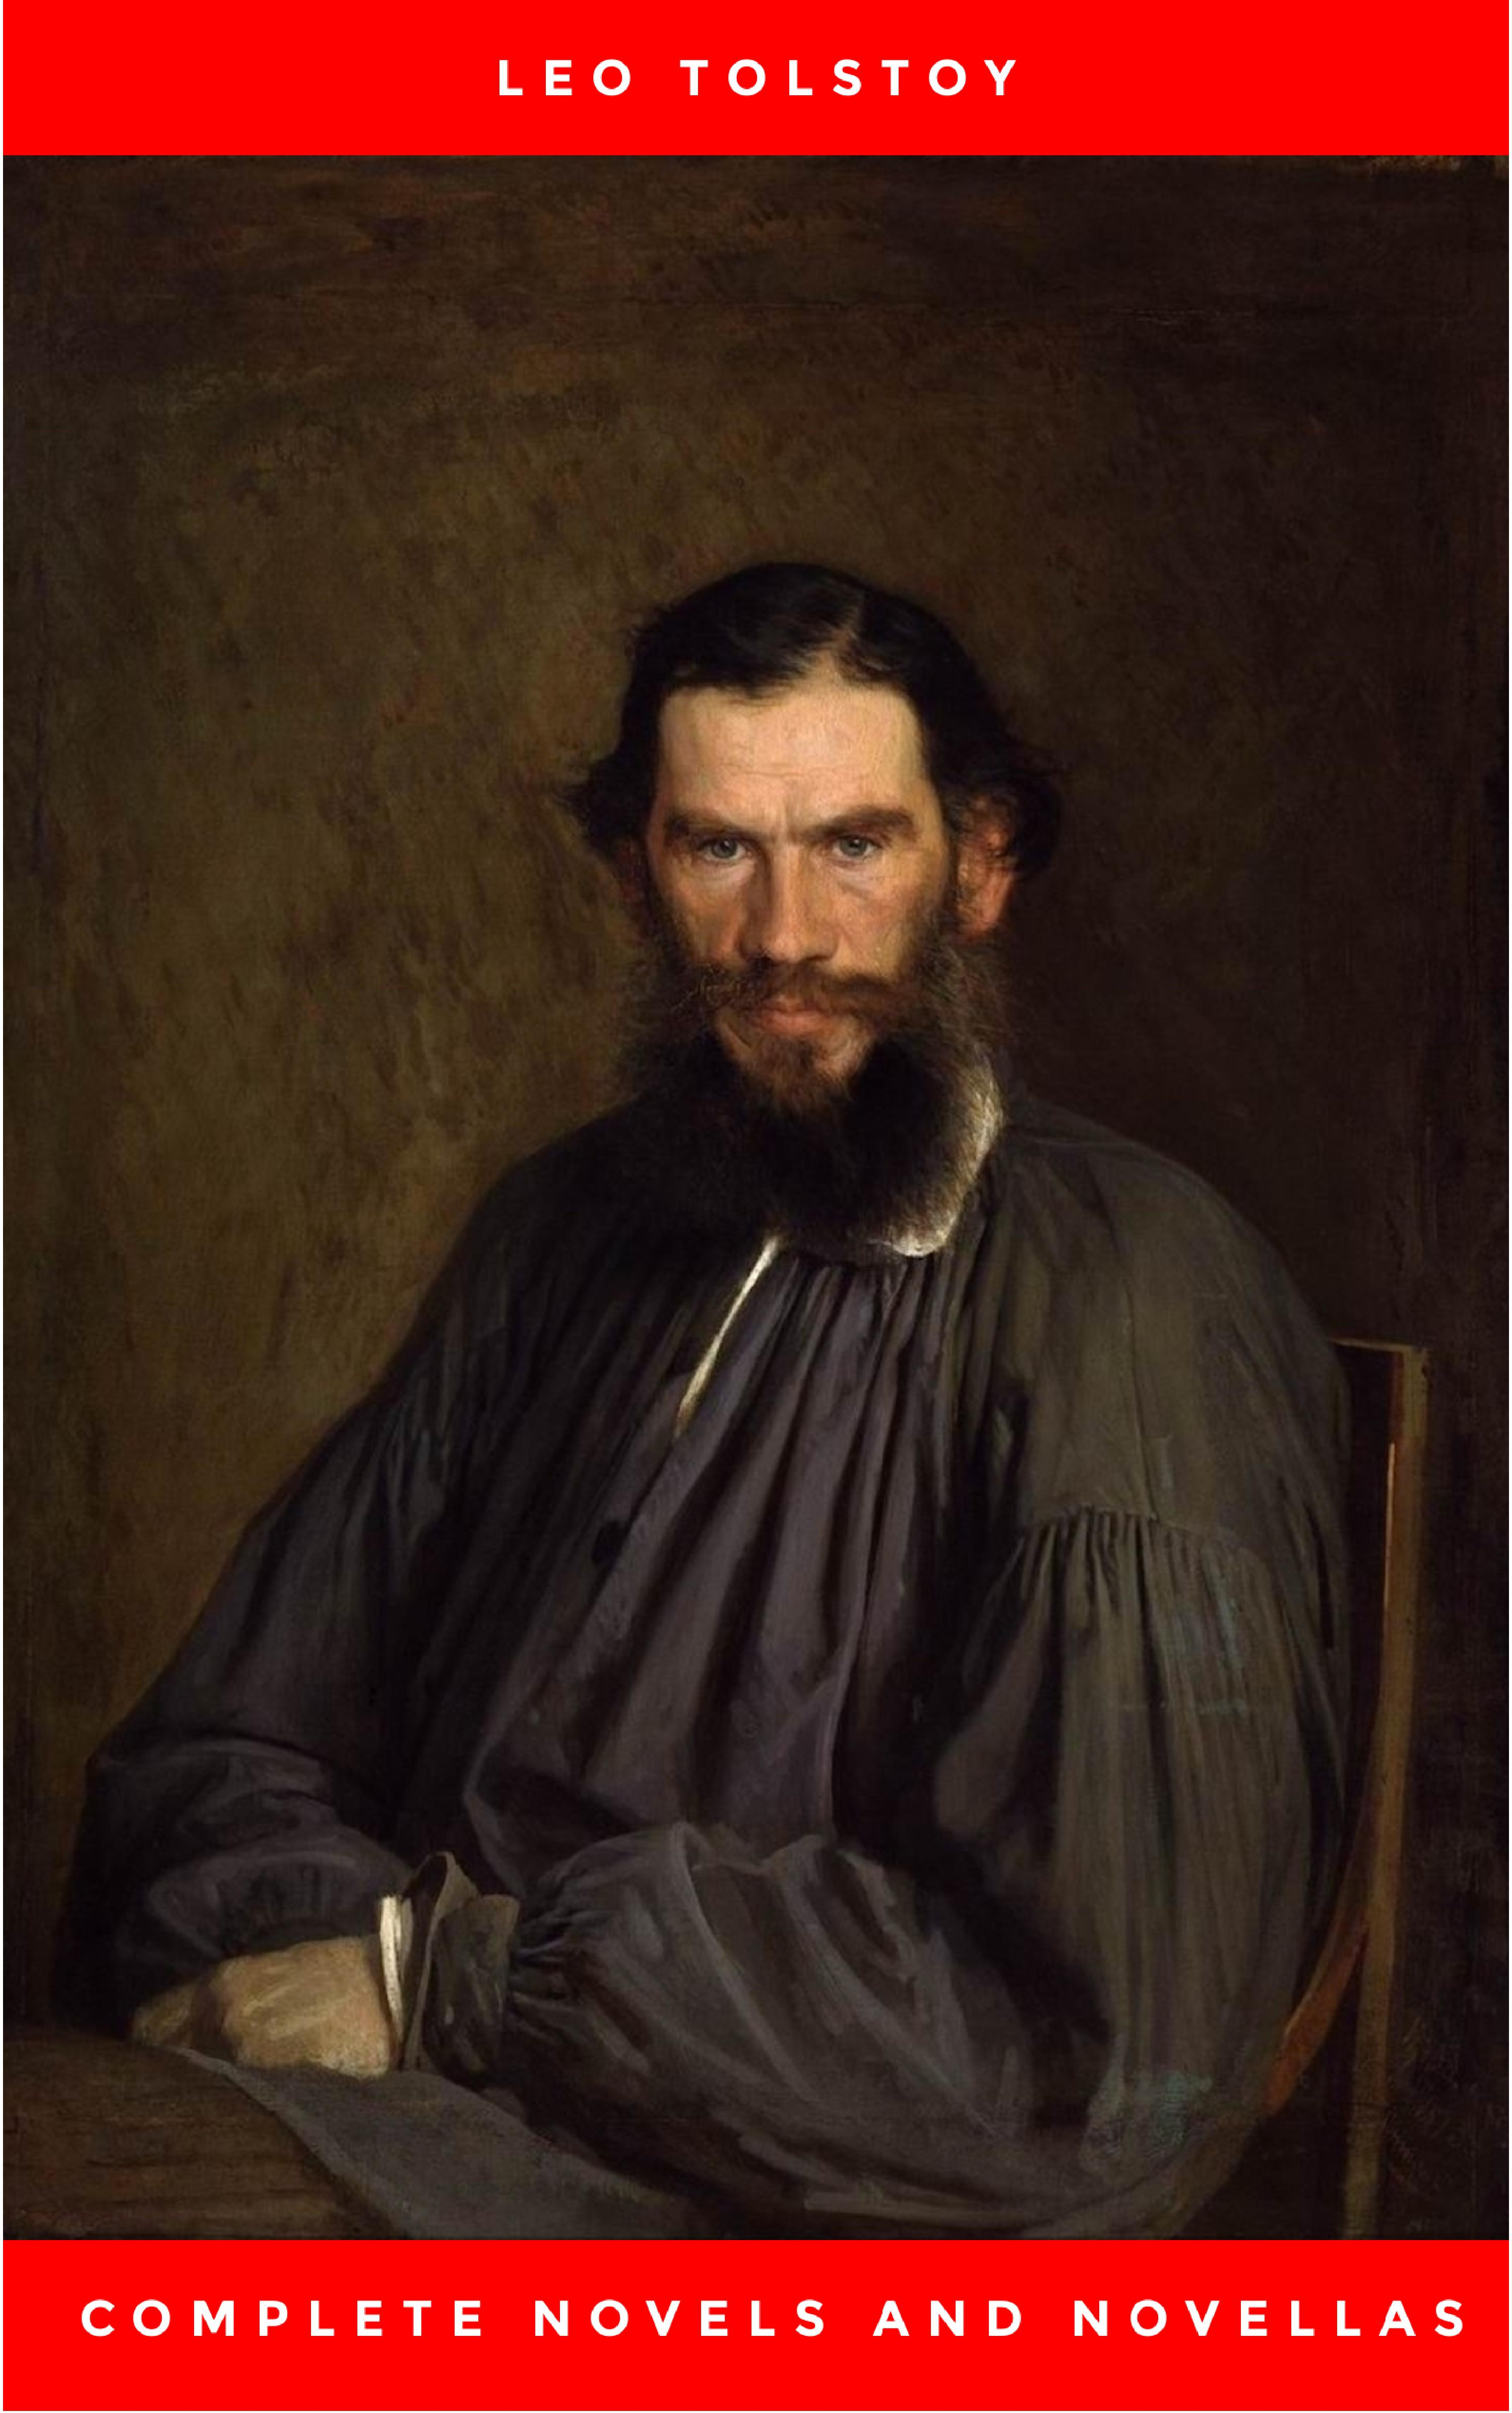 Leo Tolstoy The Complete Novels of Leo Tolstoy in One Premium Edition (World Classics Series): Anna Karenina, War and Peace, Resurrection, Childhood, Boyhood, Youth, ... (Including Biographies of the Author) leo tolstoy resurrection volume 2